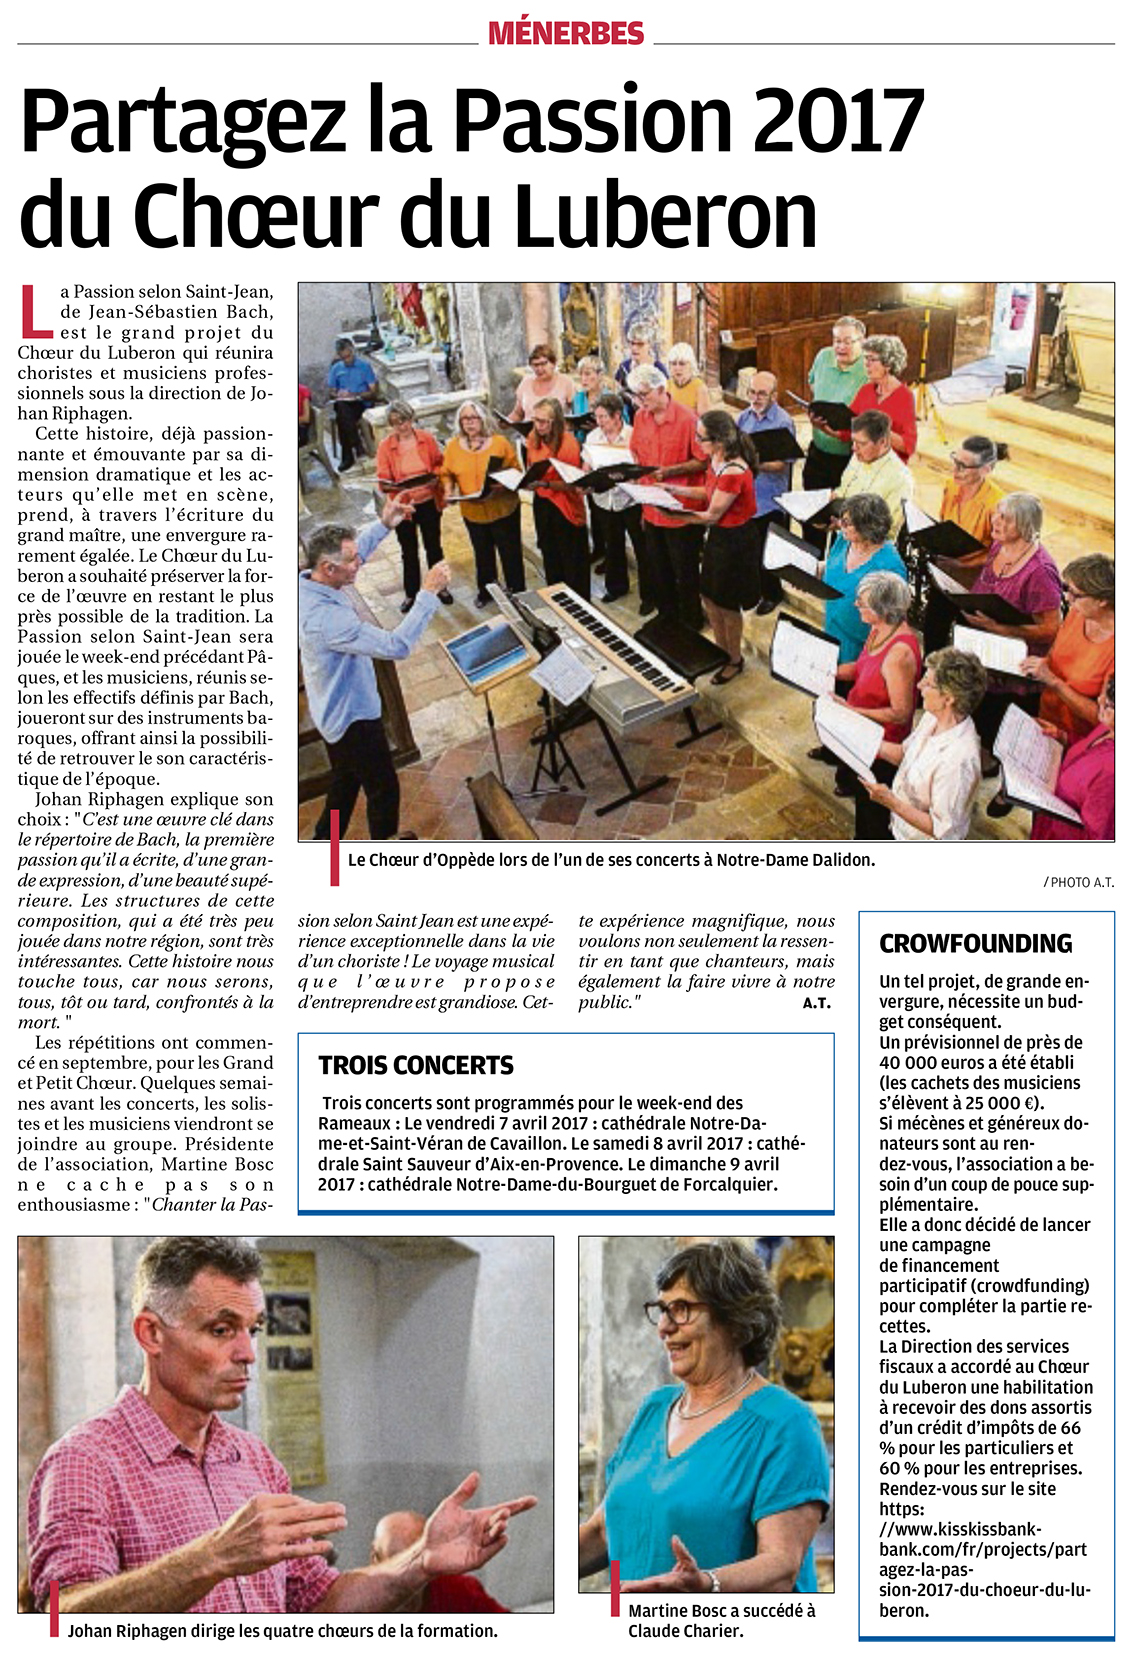 cdl-article-la-provence-crowdfunding